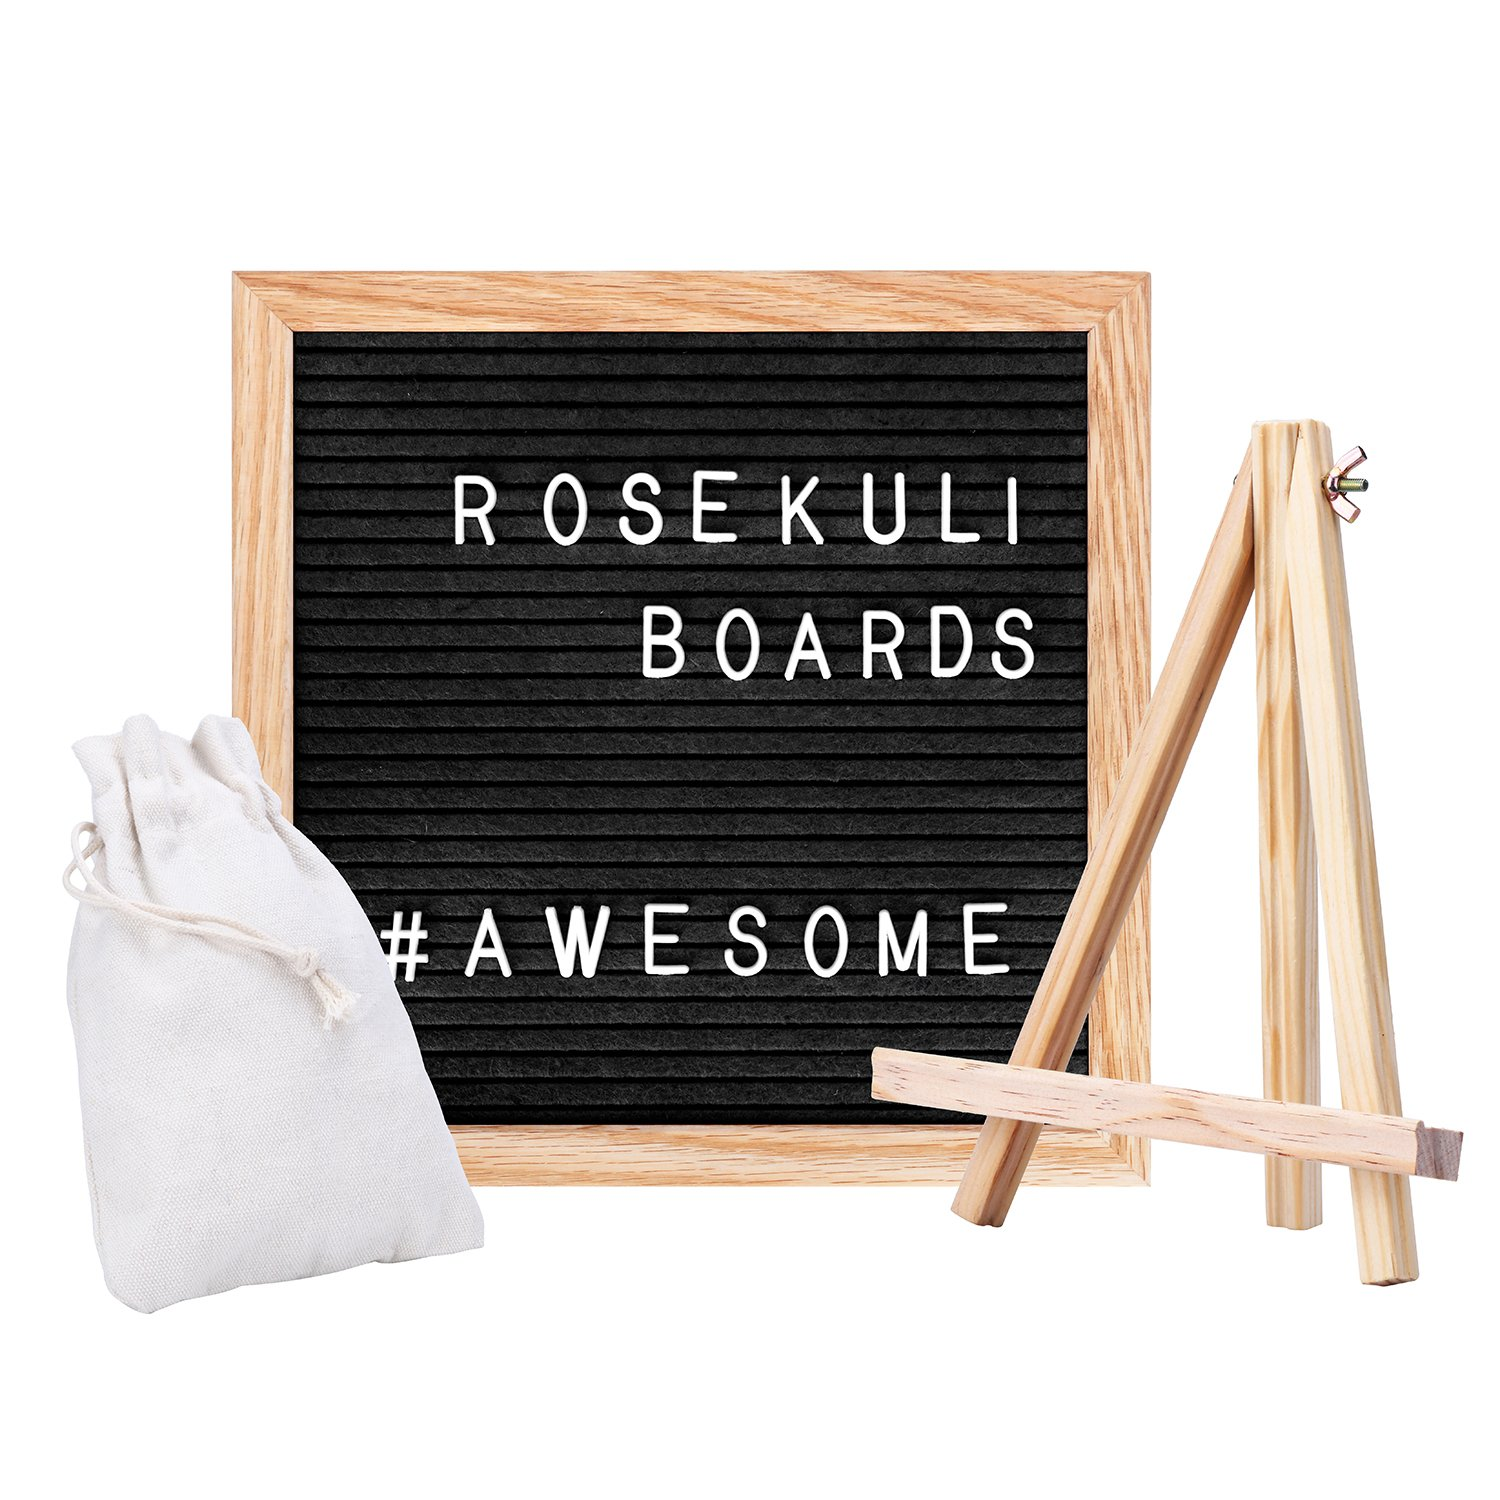 ROSE KULI Changeable Felt Letter Board - 10x10 Inch Wooden Message Board Includes Sign Numbers Symbols Emojis with Solid Oak Frame Free Stand Scissor Canvas Bag